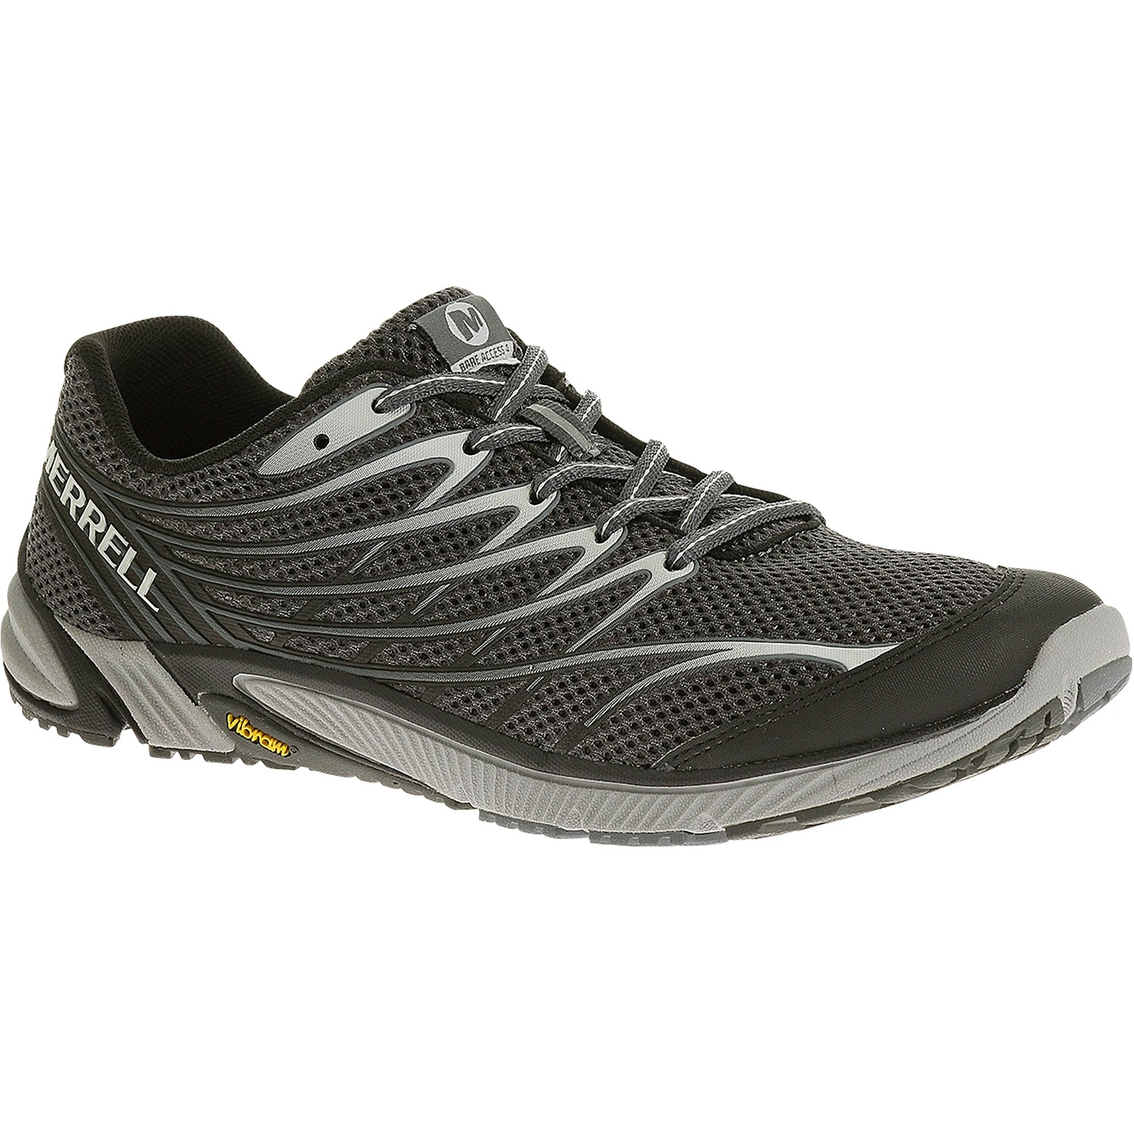 shops that stock merrell shoes 999